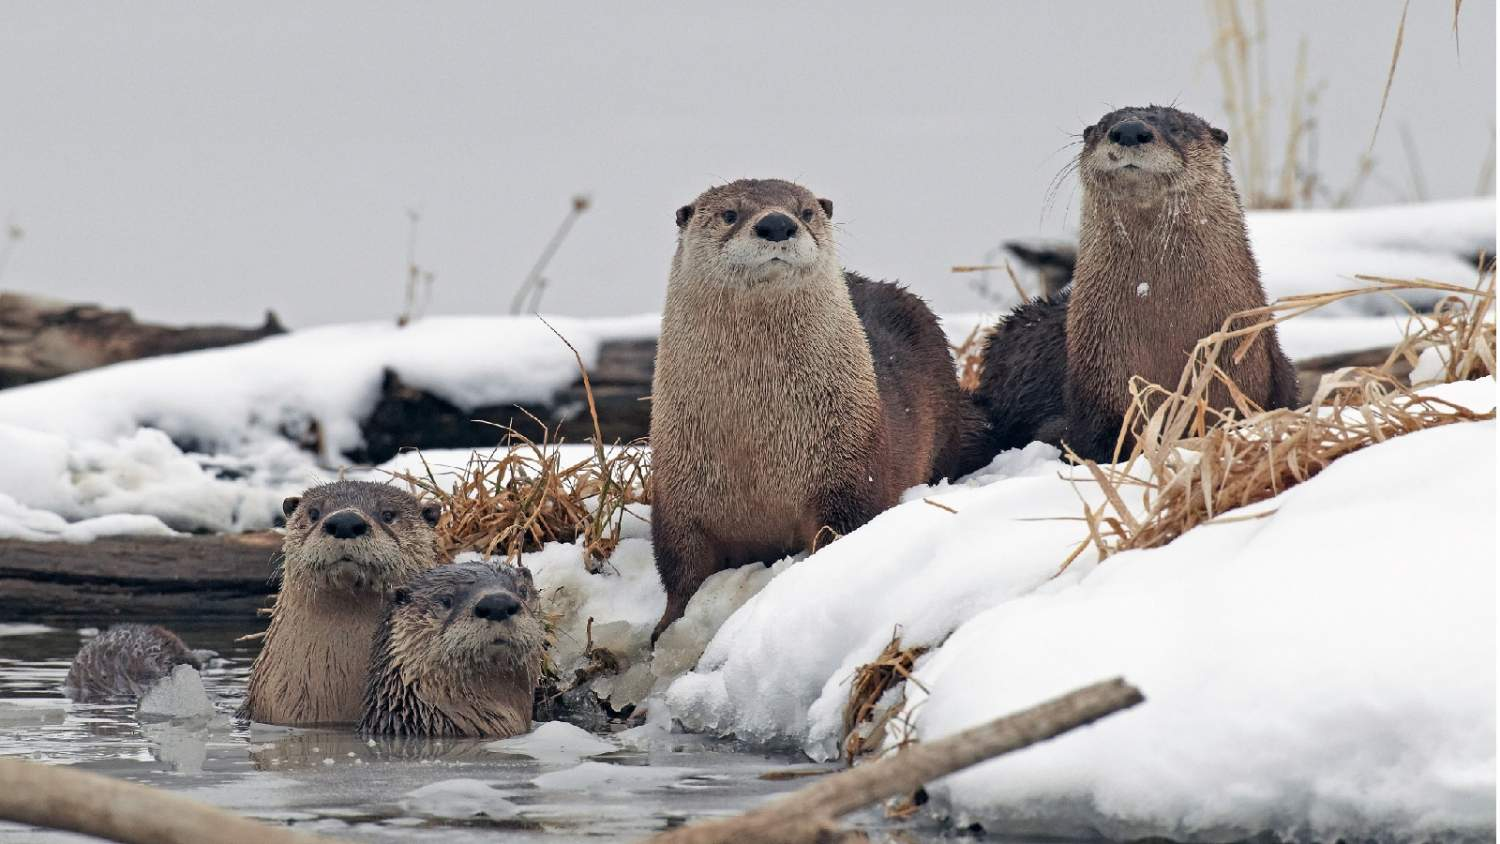 Four river otters on a snowy riverbank